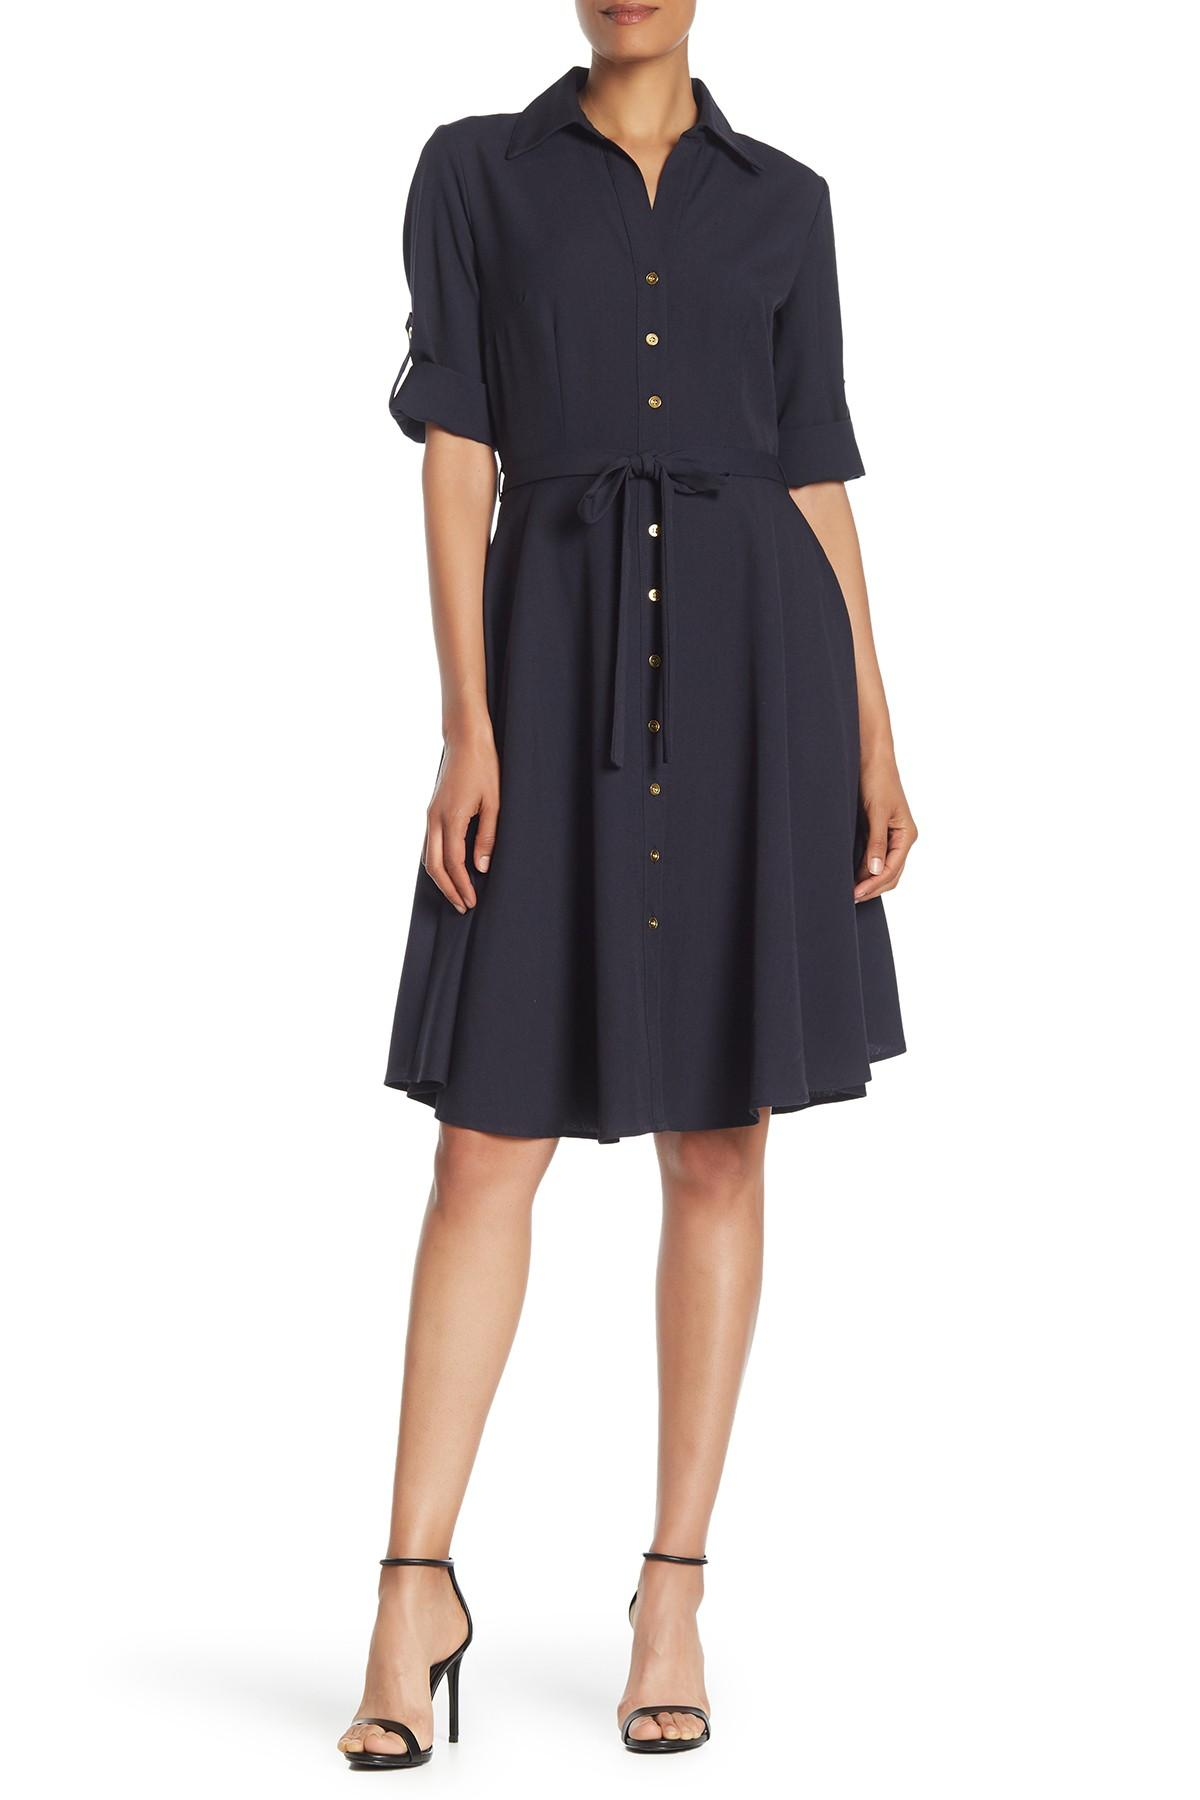 the best order online affordable price reputable site outlet on sale variety design sharagano shirt dress ...